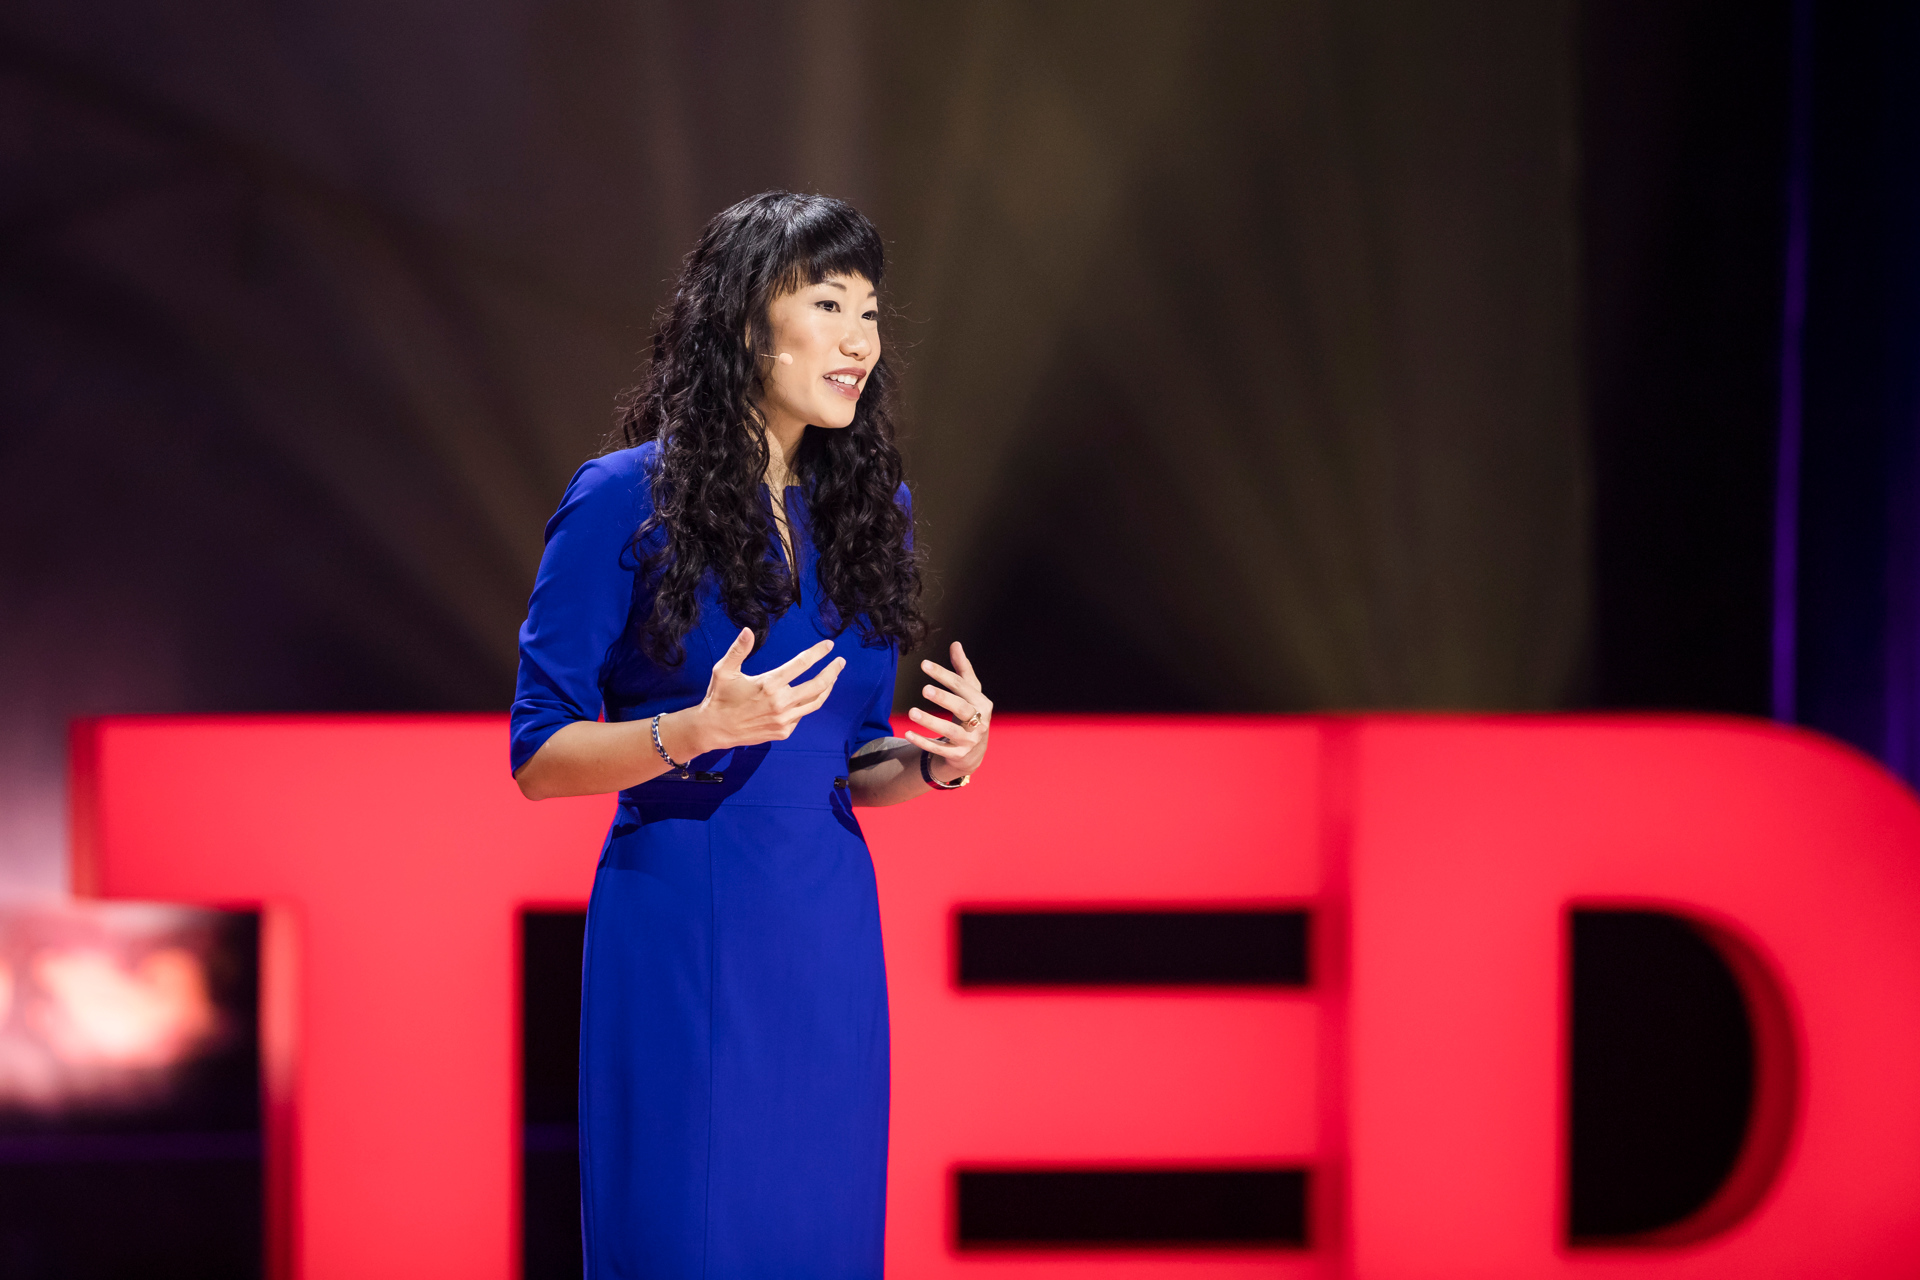 Stephanie Speirs (  Solstice  ) speaks at TEDWomen 2017 — Bridges, November 1-3, 2017, Orpheum Theatre, New Orleans, Louisiana. Photo: Stacie McChesney / TED